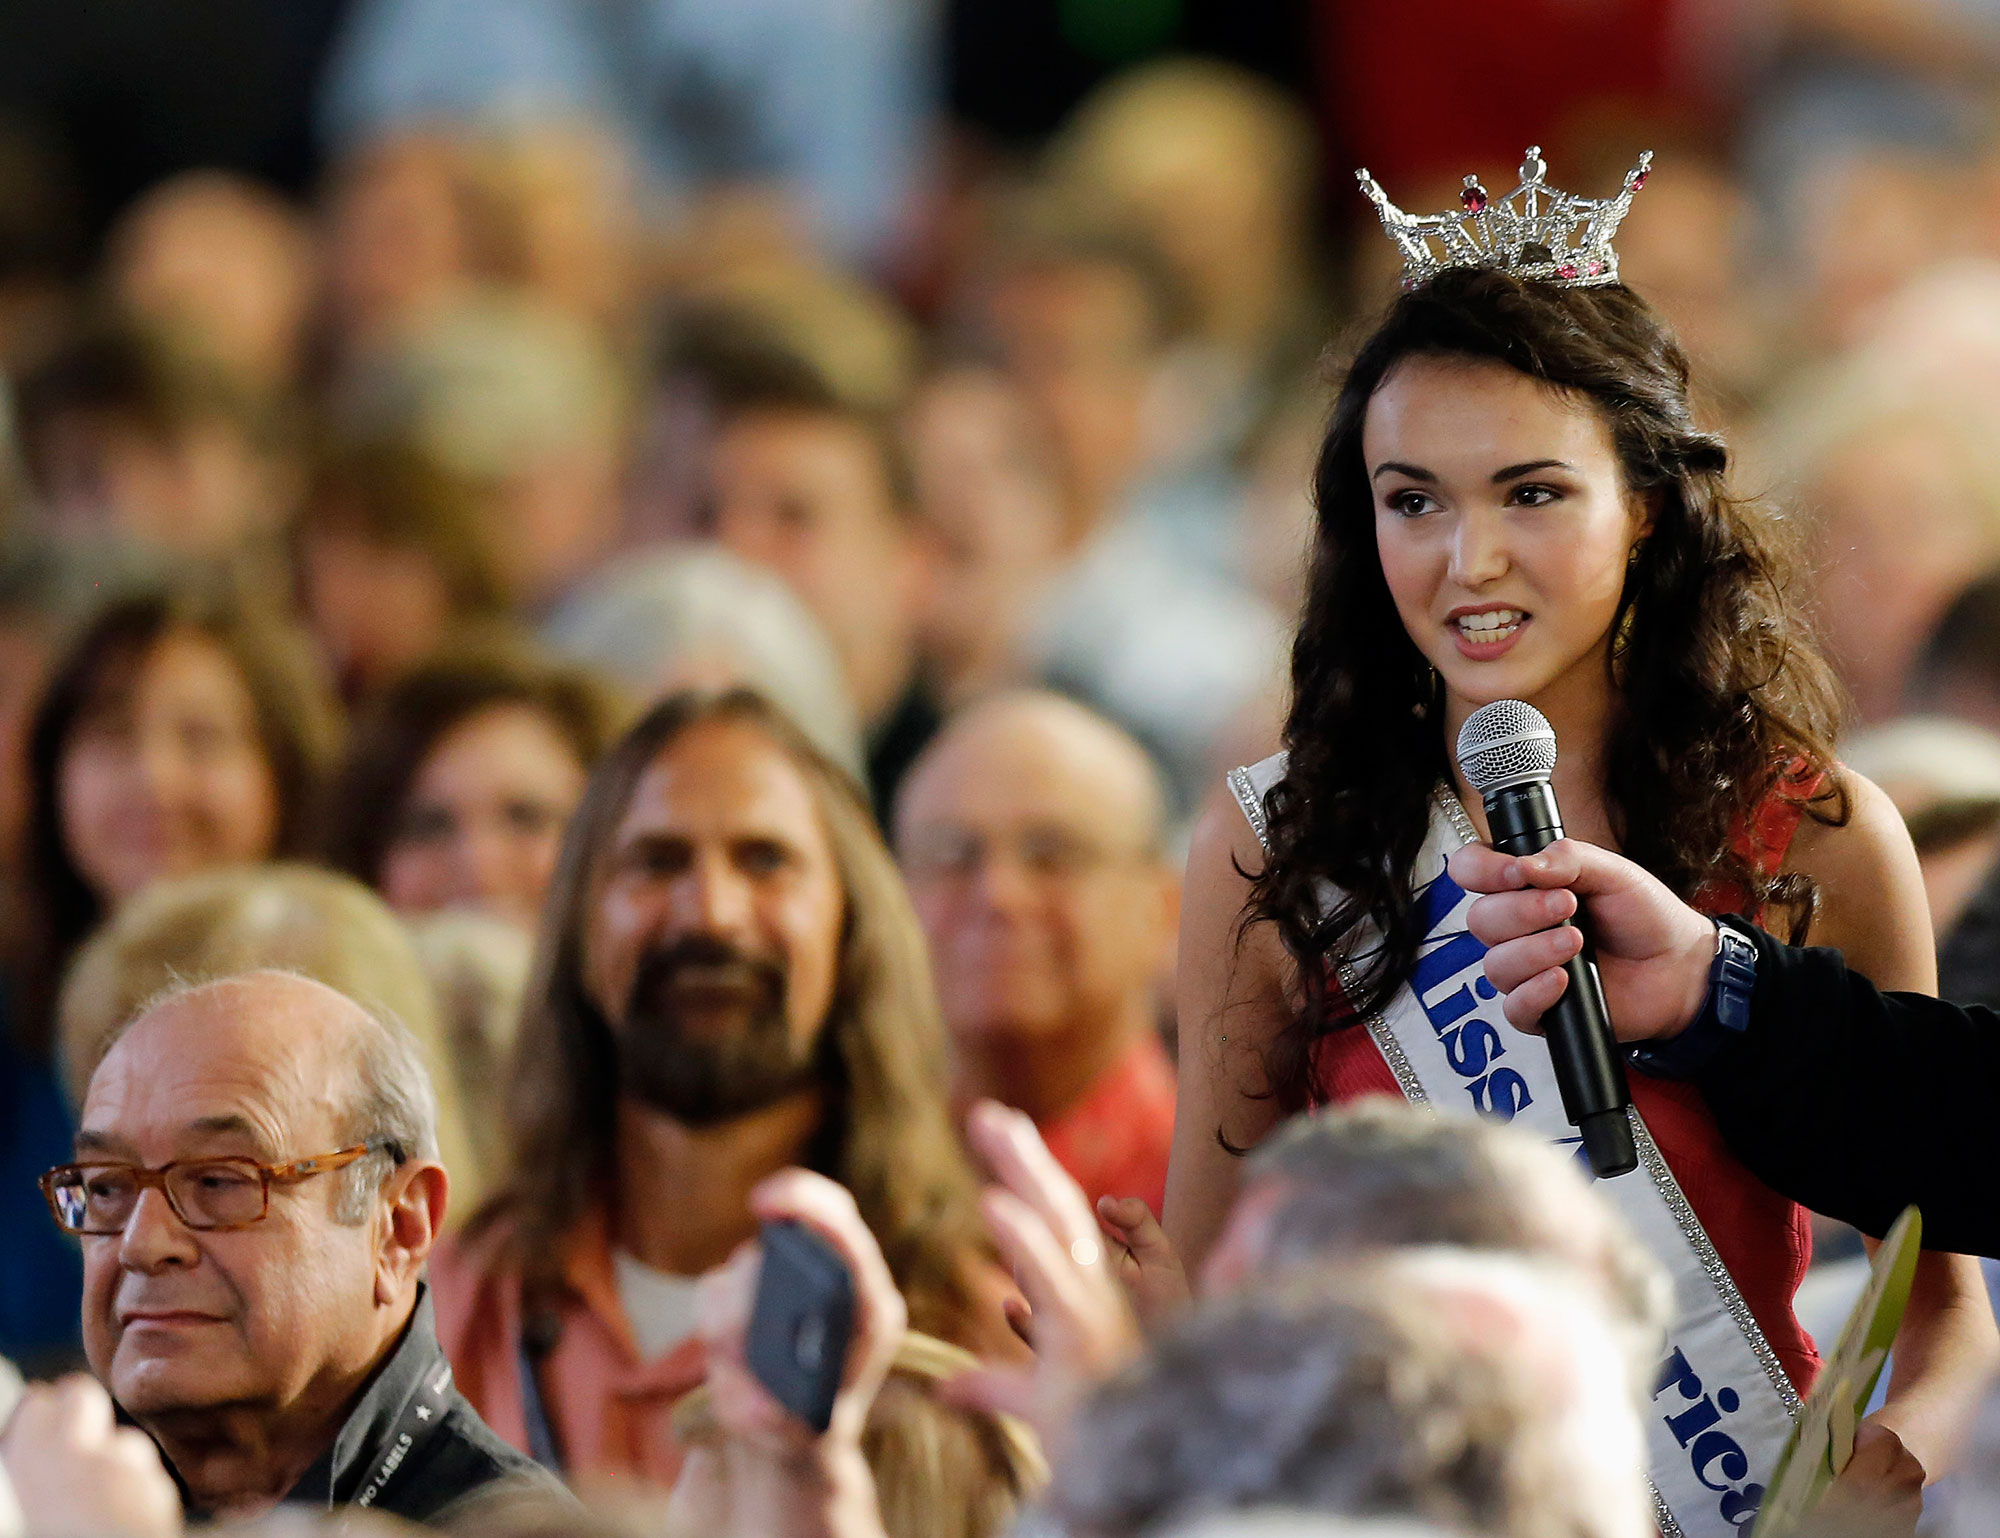 Former Miss Teen USA Contestants React to Trump - DirectExpose